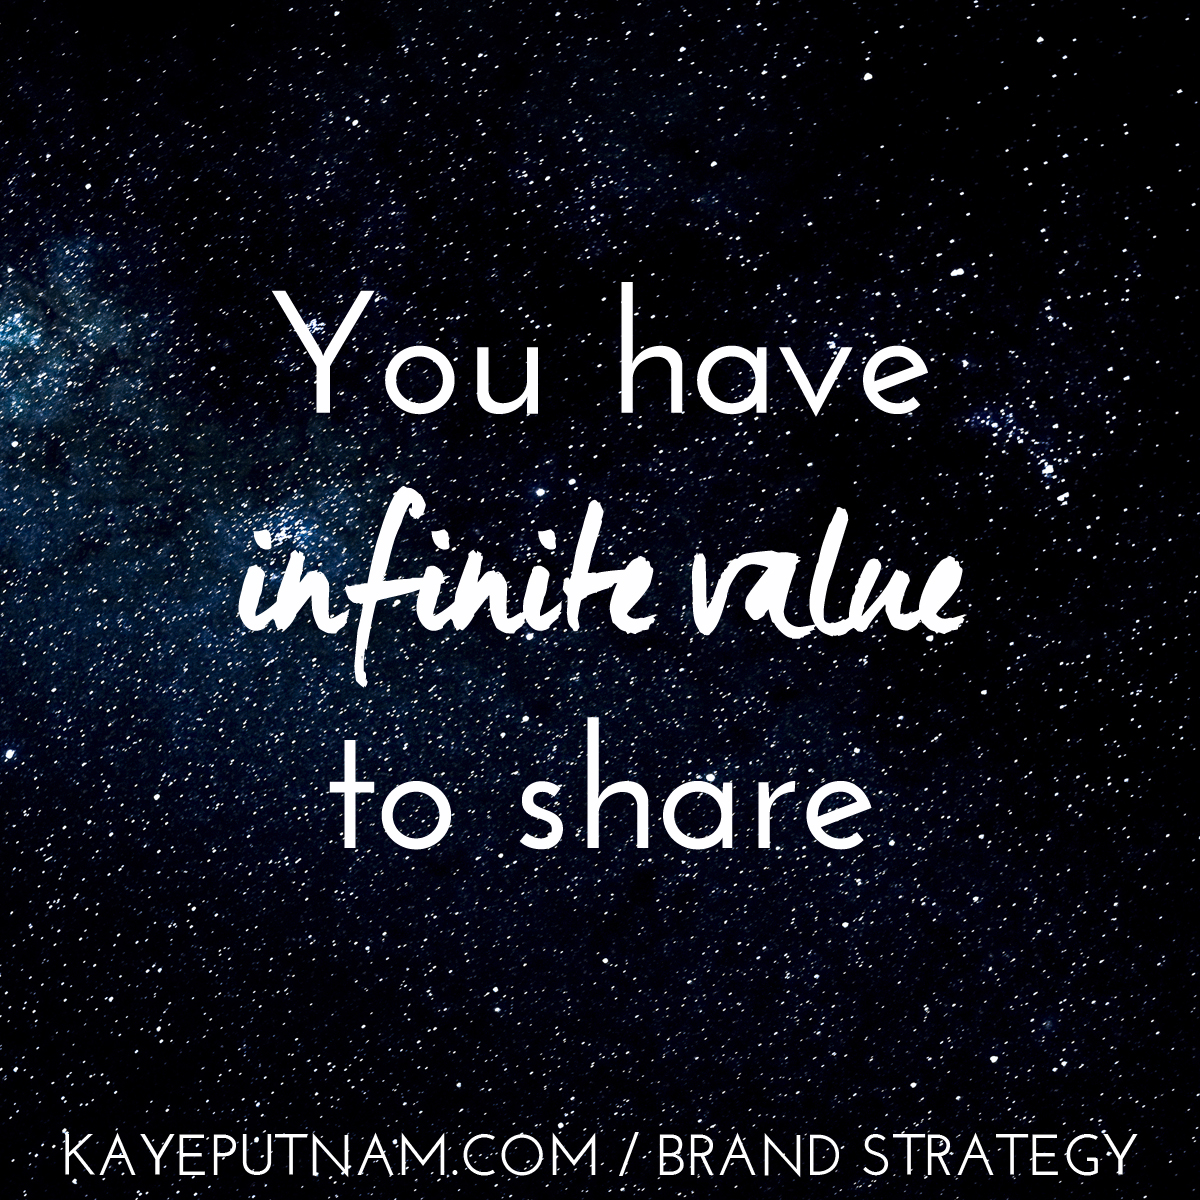 You have infinite value to share. #InDemandBrand